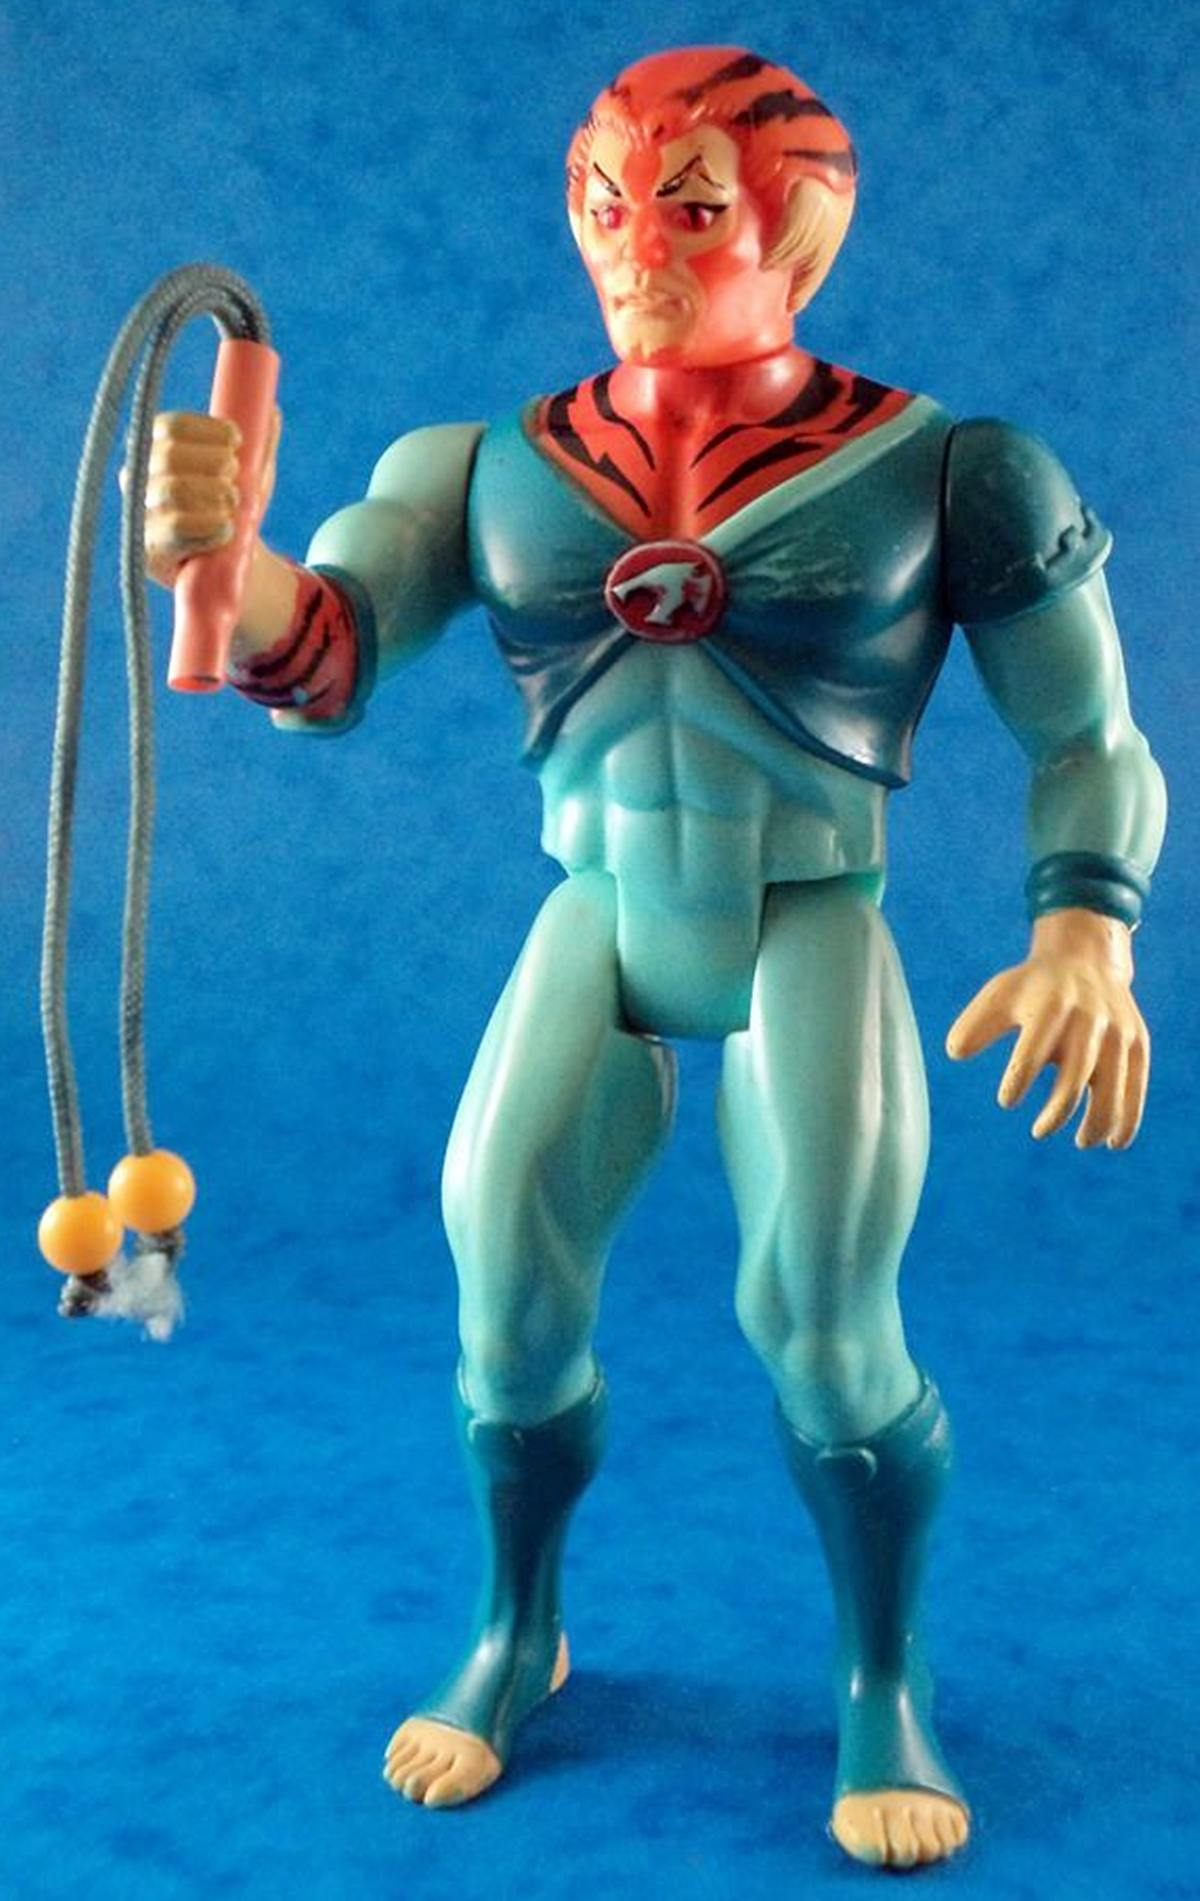 4 14 How Many Of These 16 ThunderCats Toys Did You Own?